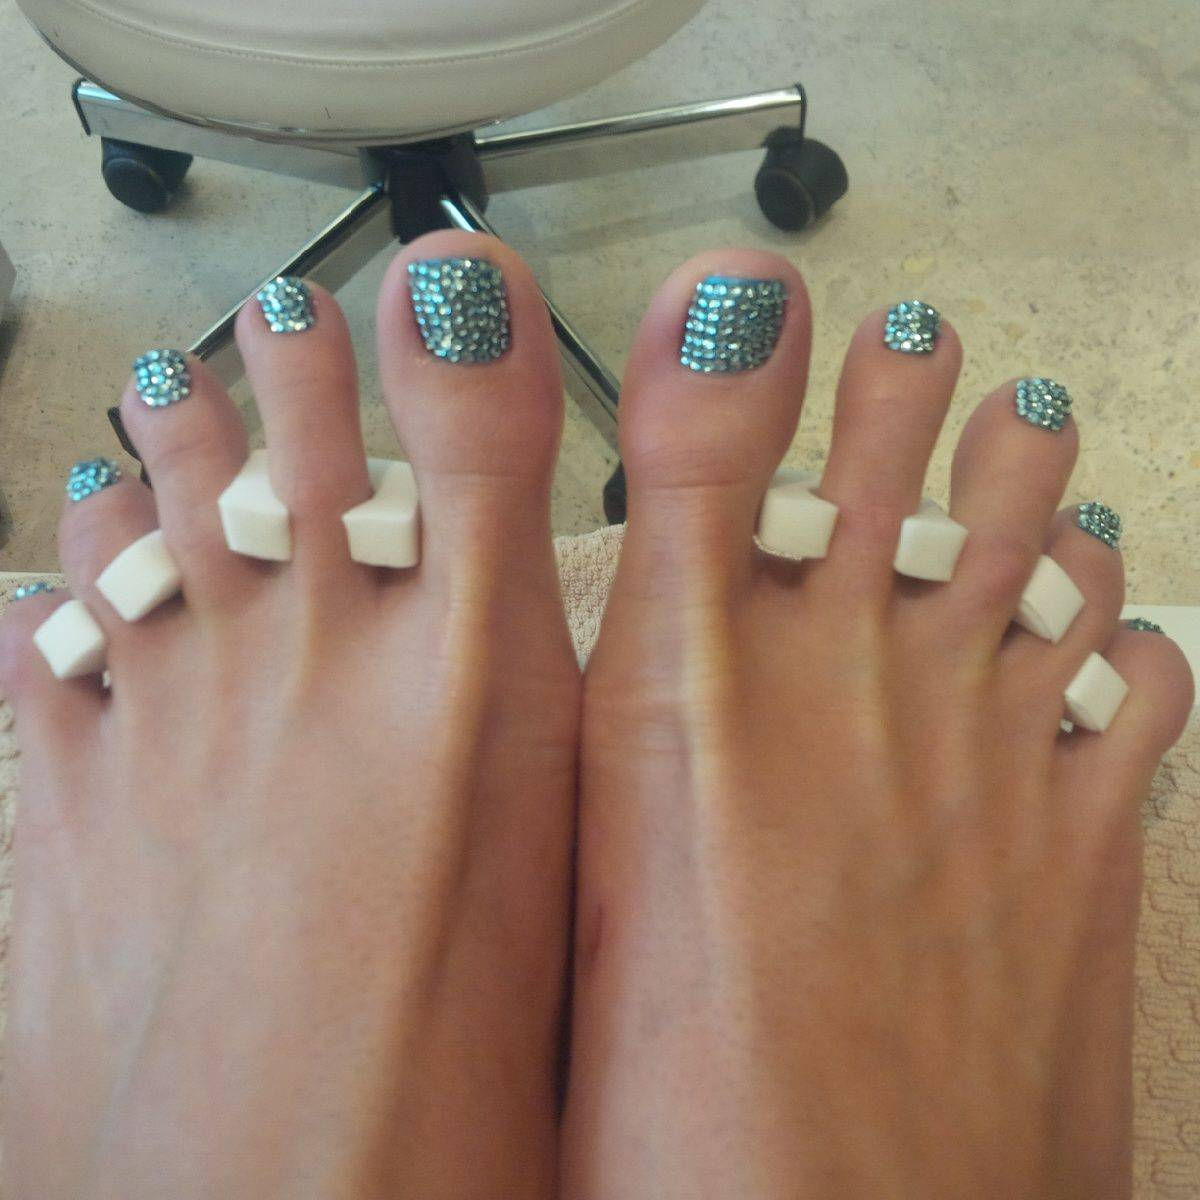 Swarovski Pedicure? Yes, It Exists! ONLY at the Fontainebleau Hotel ...